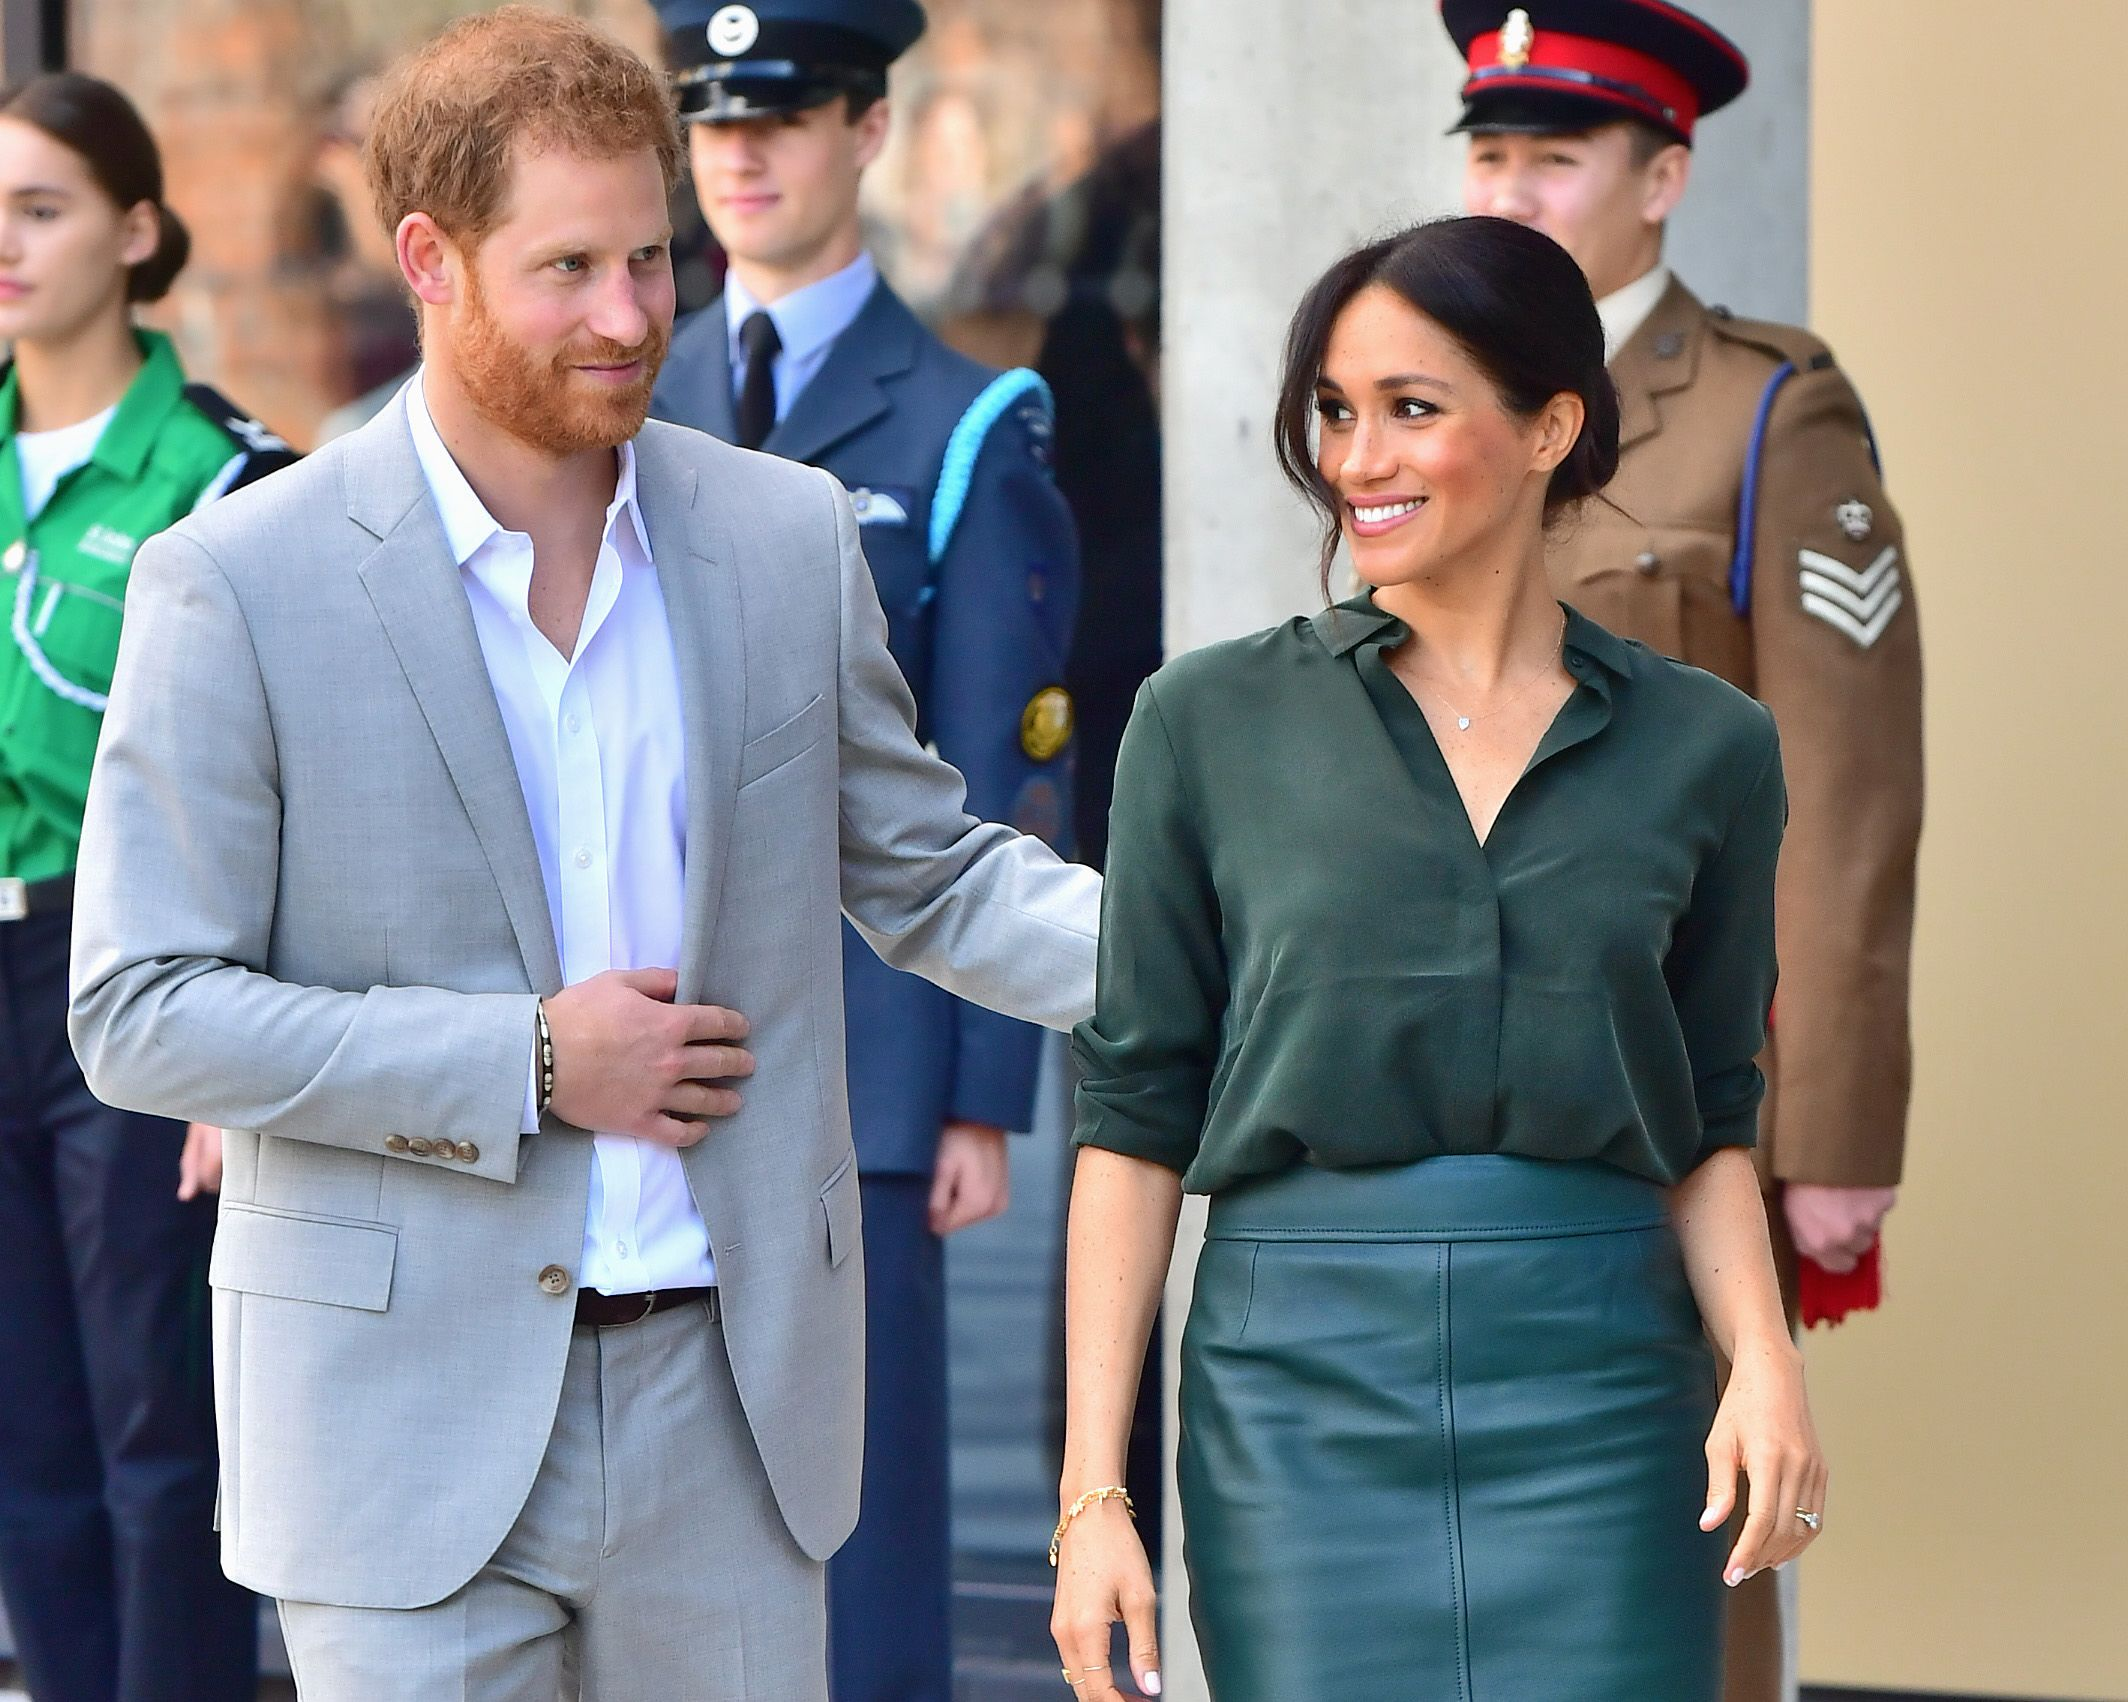 meghan markle is pregnant with first child meghan and prince harry expecting baby meghan and prince harry expecting baby